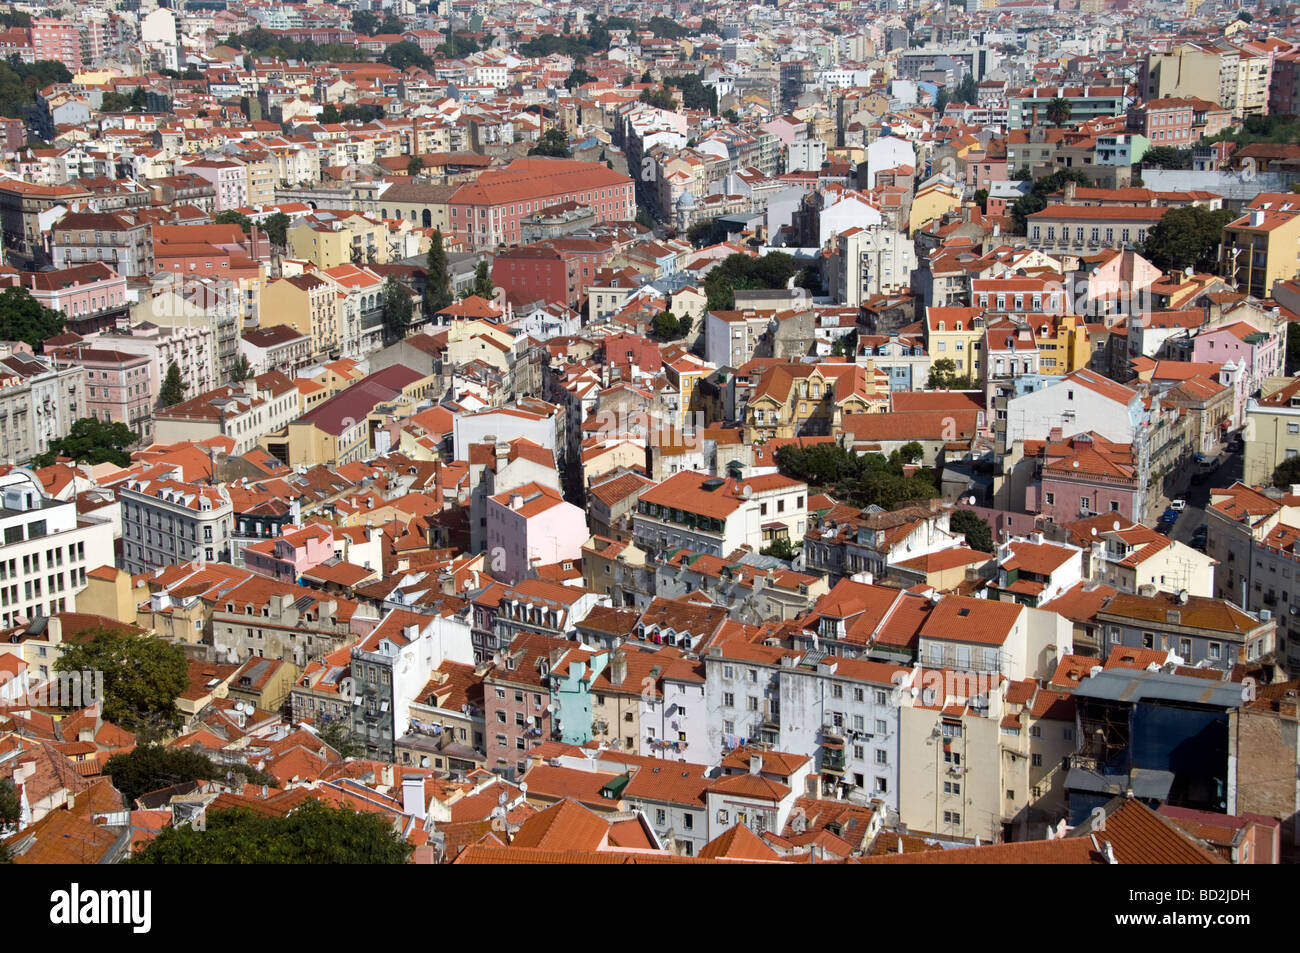 Aerial view of Lisbon rooftops from Saint George Castle Portugal - Stock Image